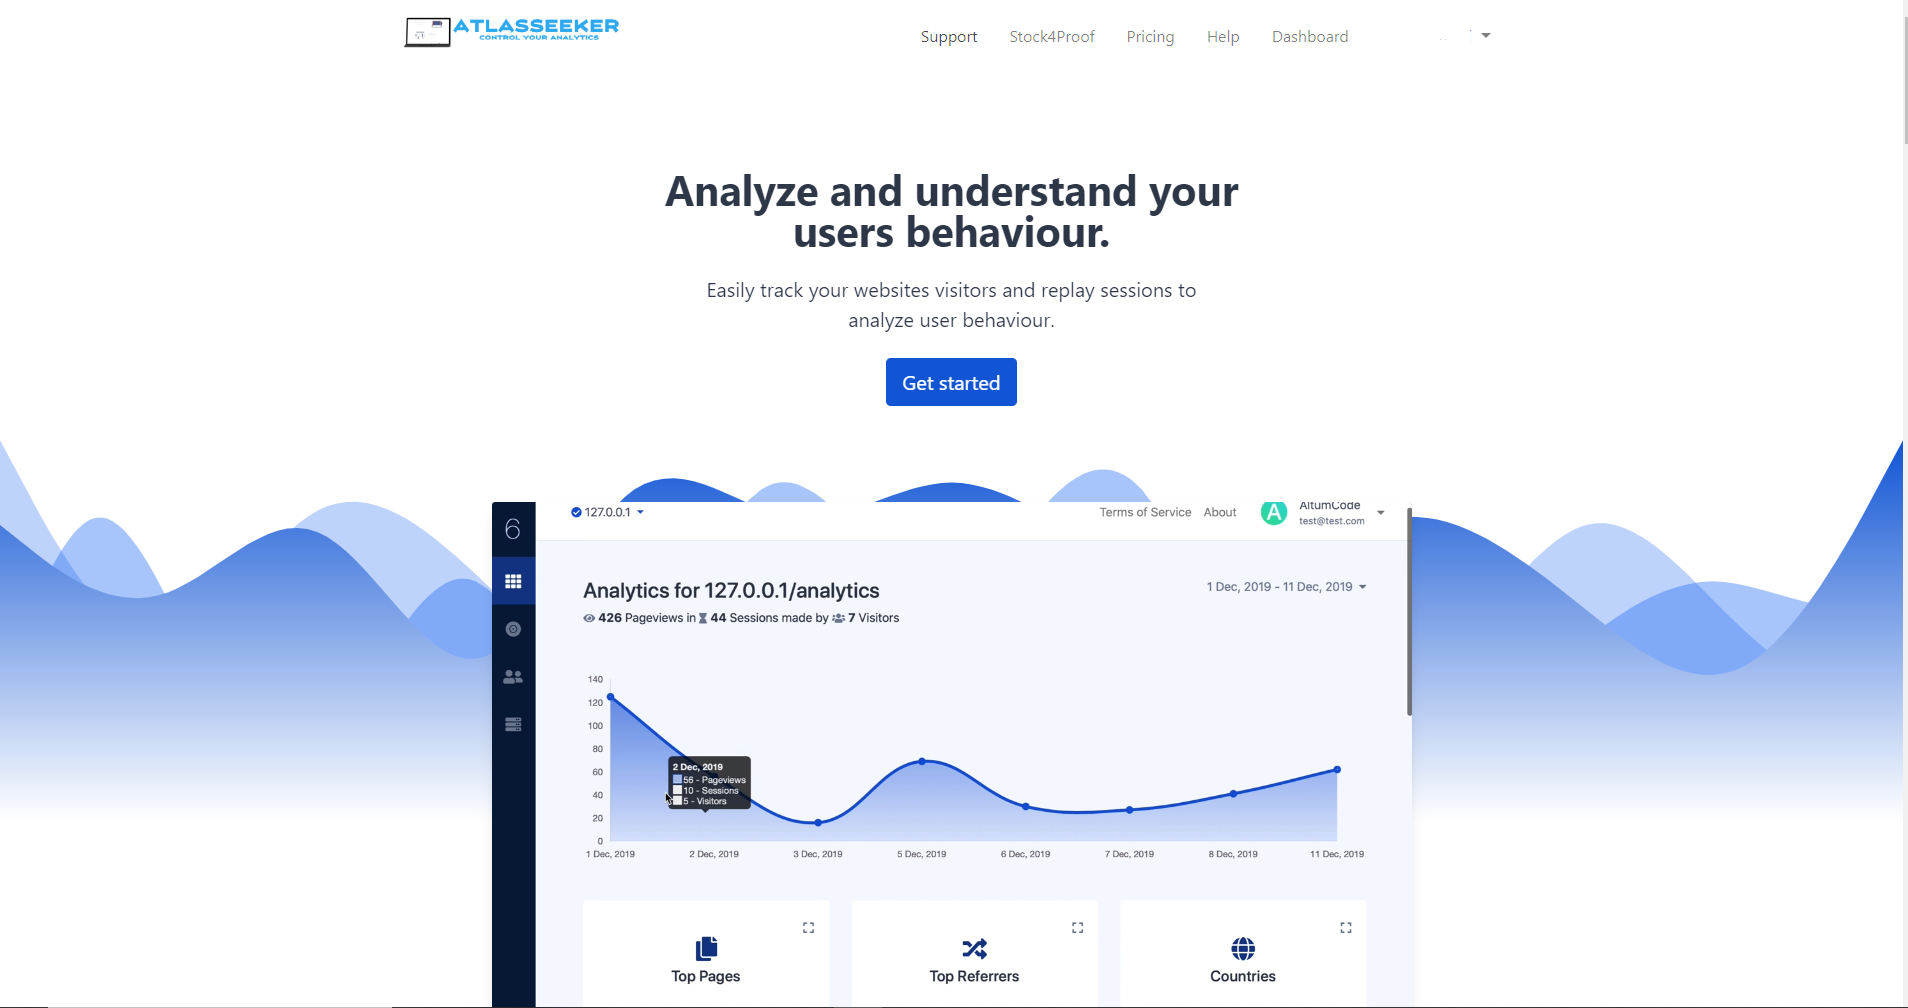 AtlasSeeker Analytics Data Platform